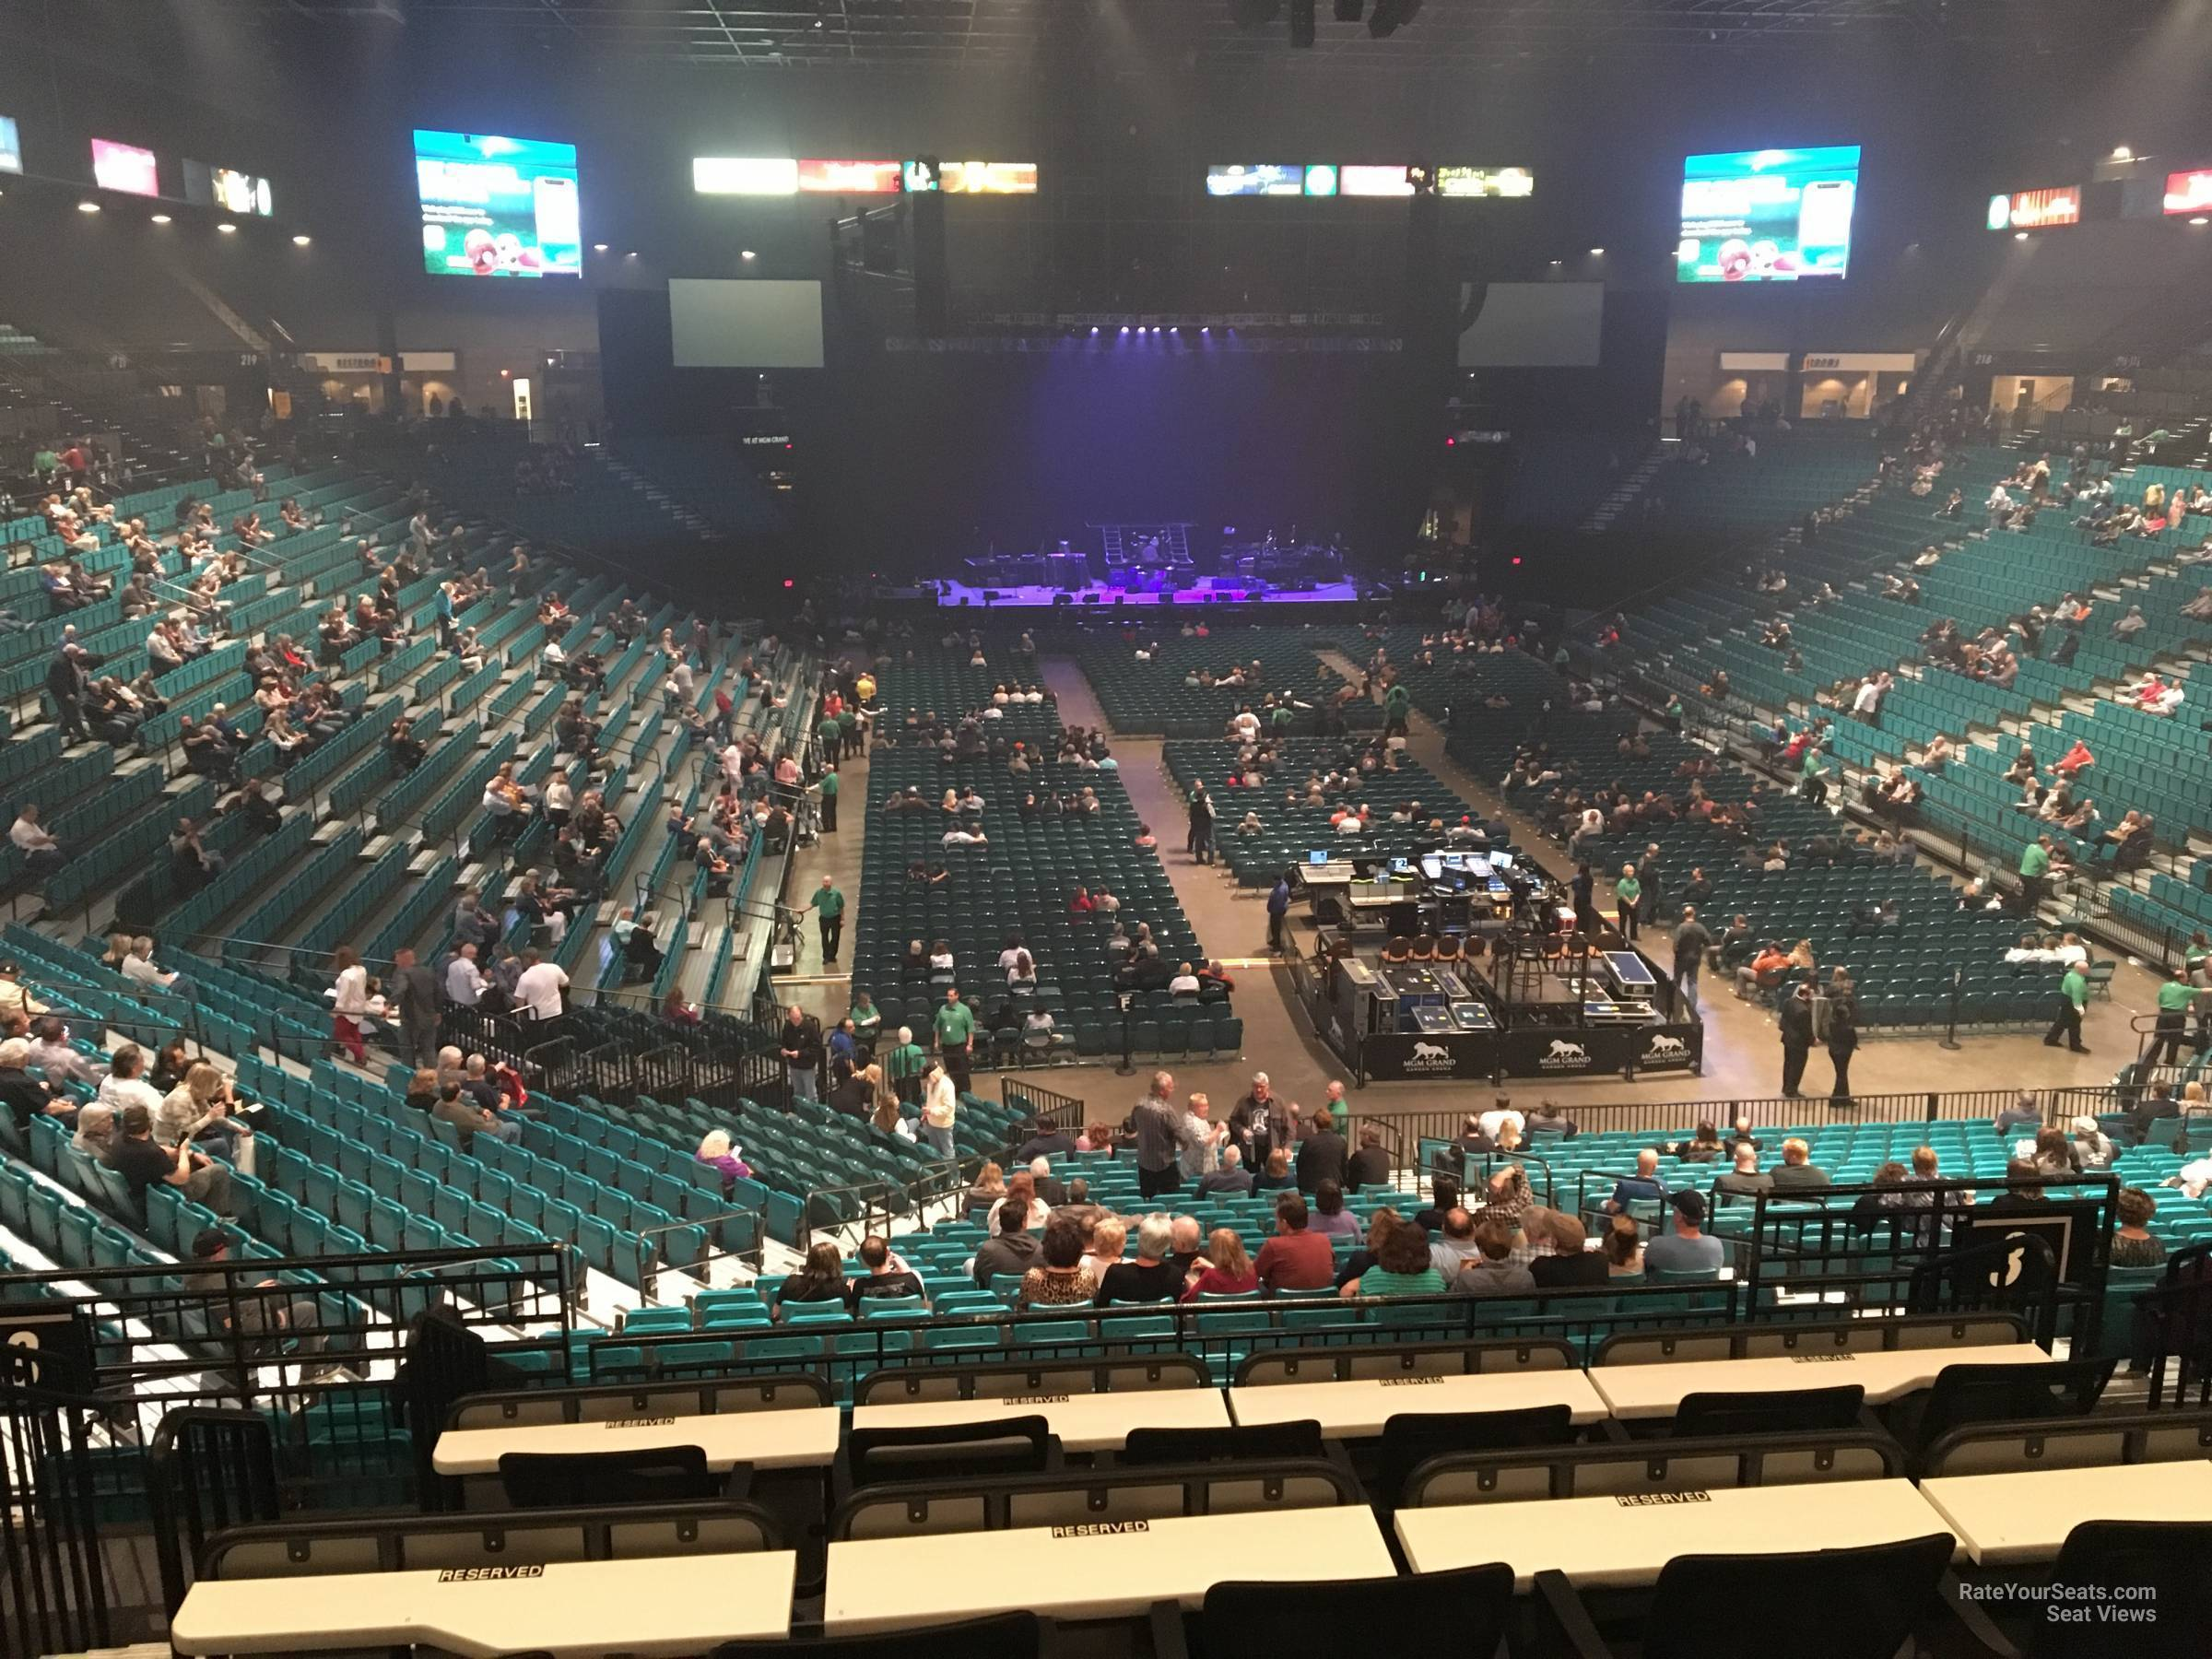 MGM Grand Garden Arena Section 103 - RateYourSeats.com